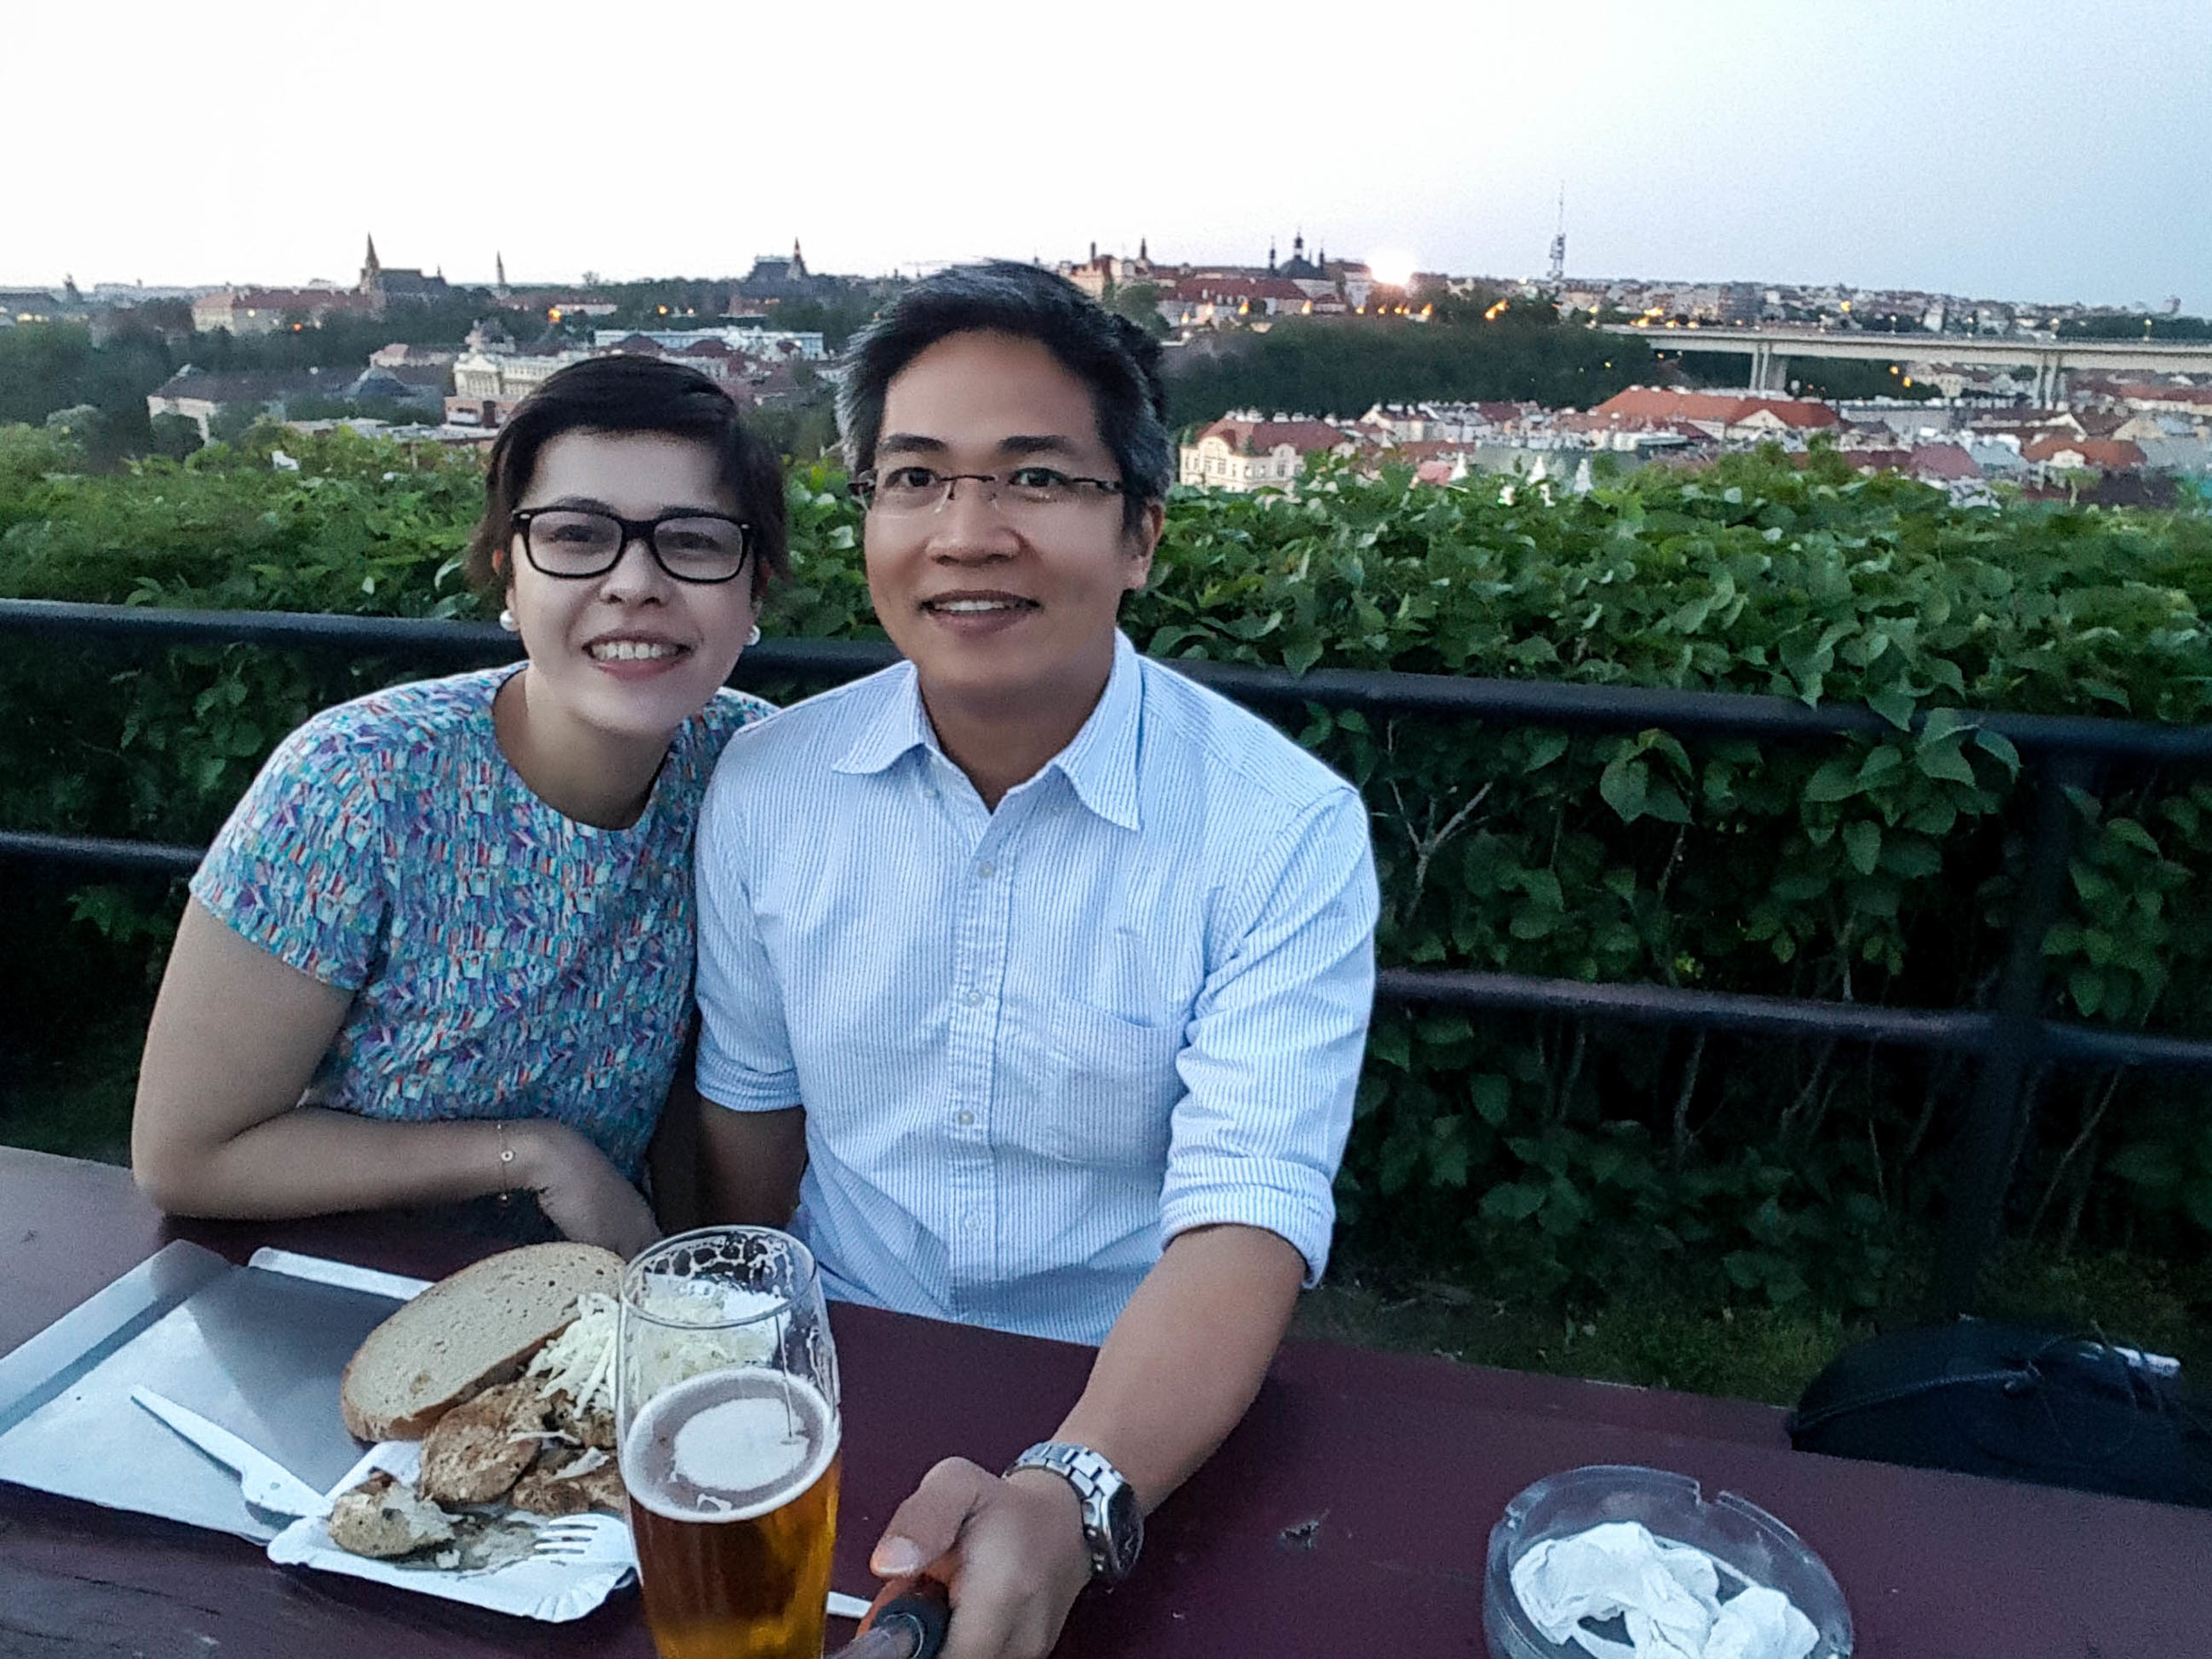 Capping the Prague visit with a night in the beer garden overlooking the city. The grilled mushrooms are to die for! :)